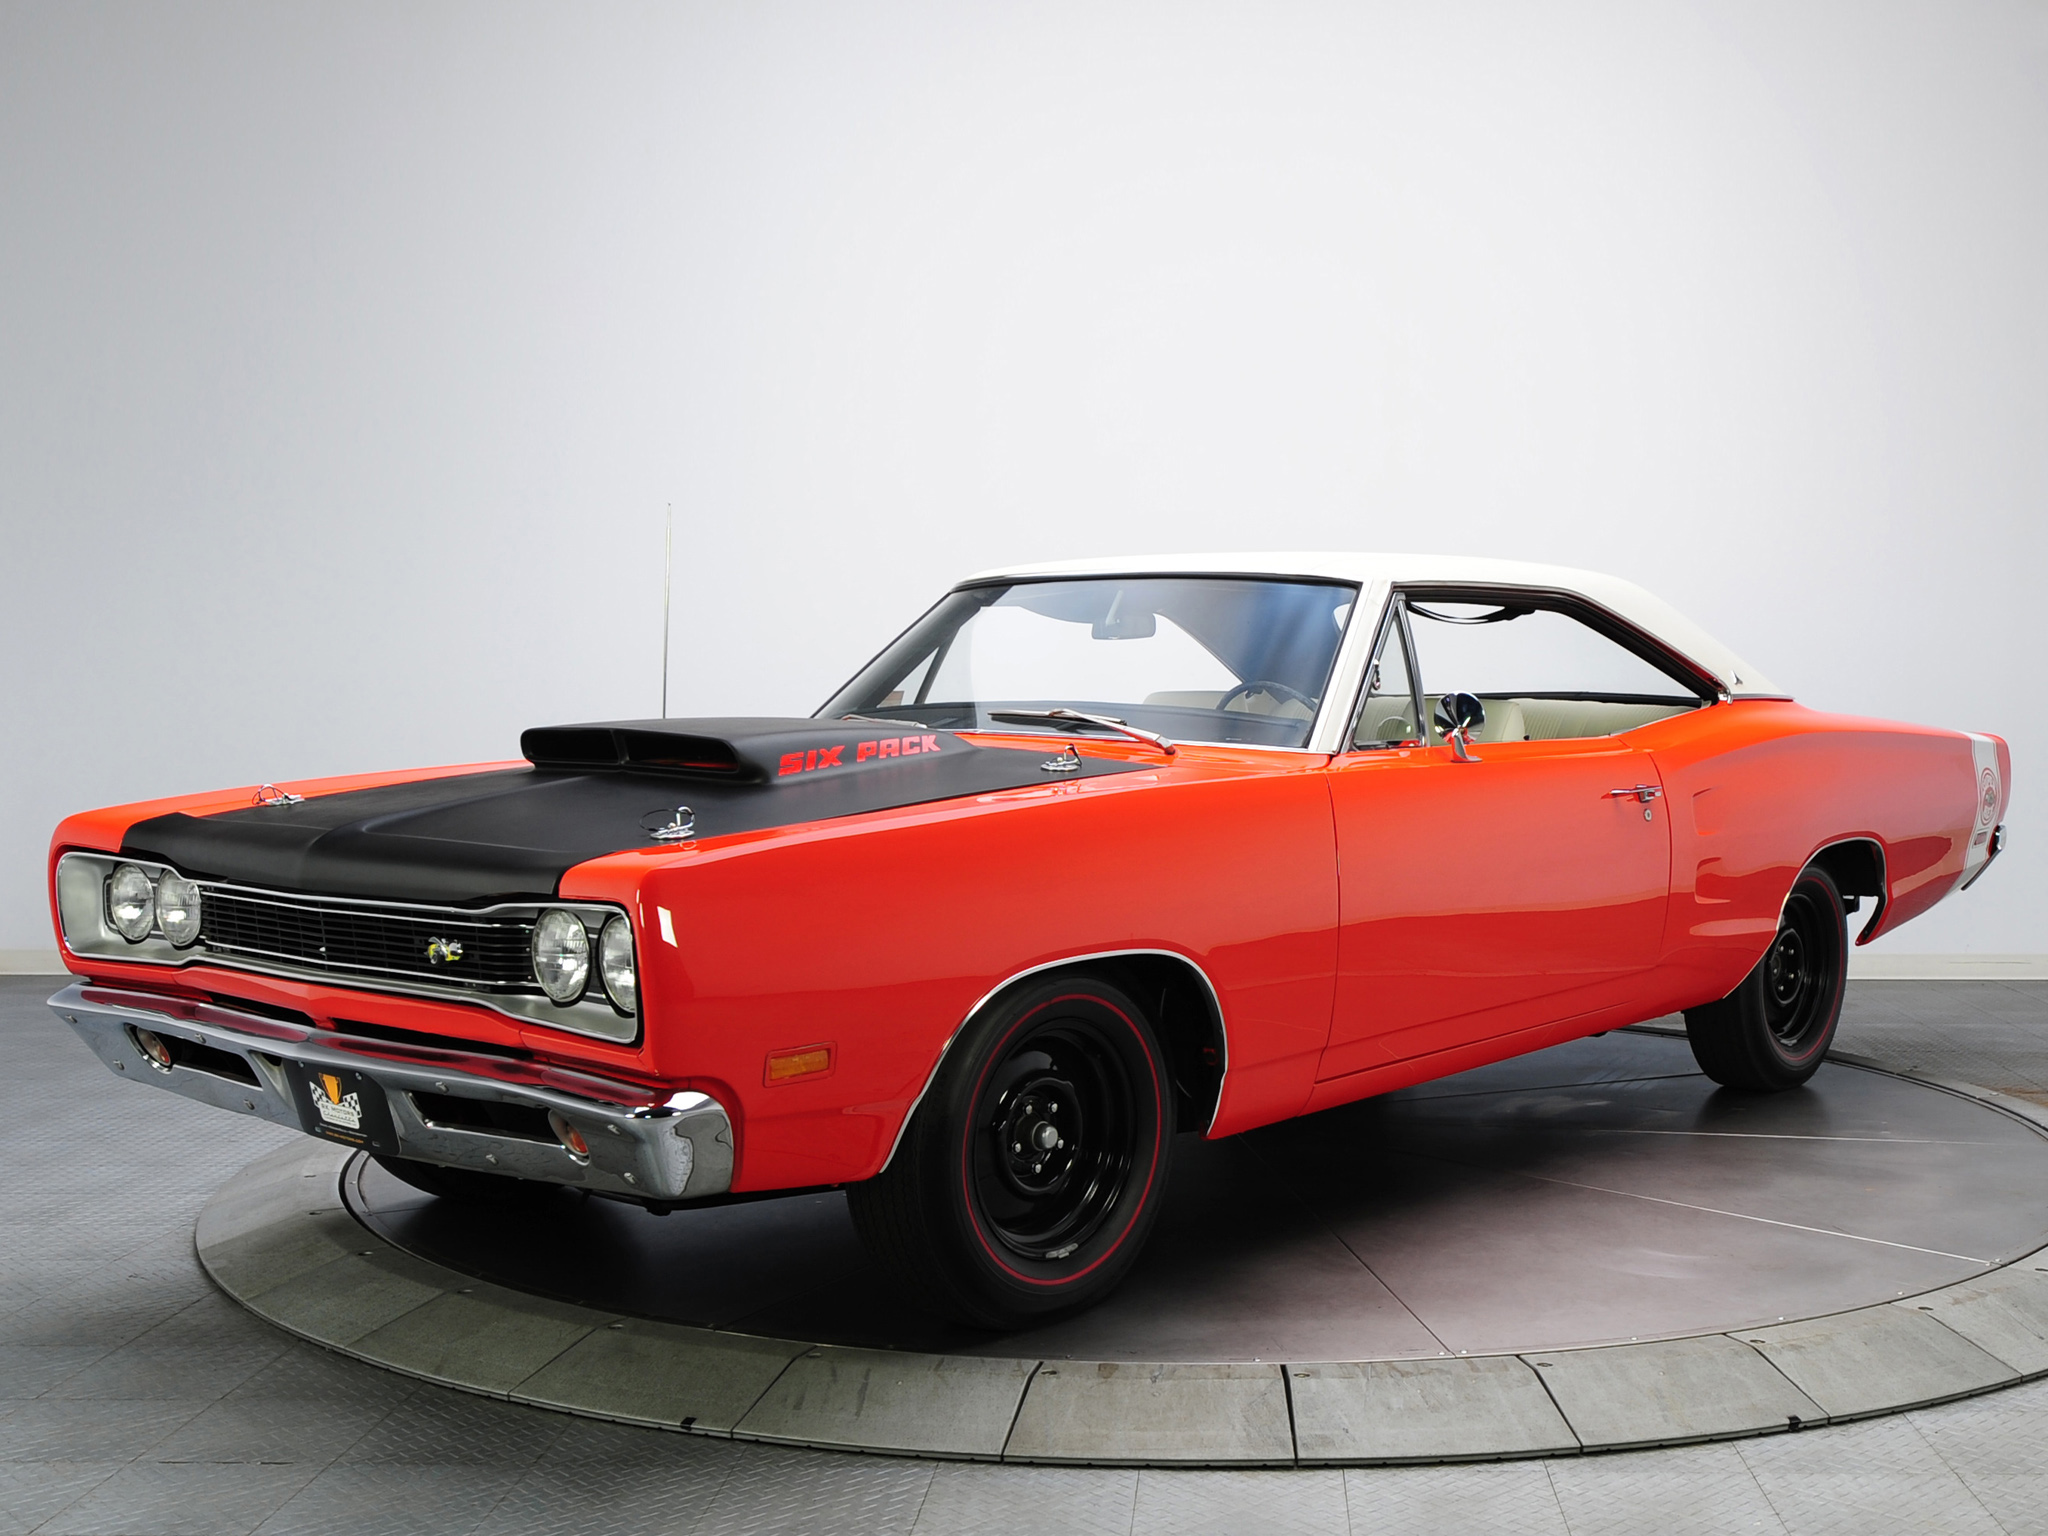 1969 Dodge Coronet Super Bee 440 Six Pack Hardtop Coupe WM23 muscle classic    f